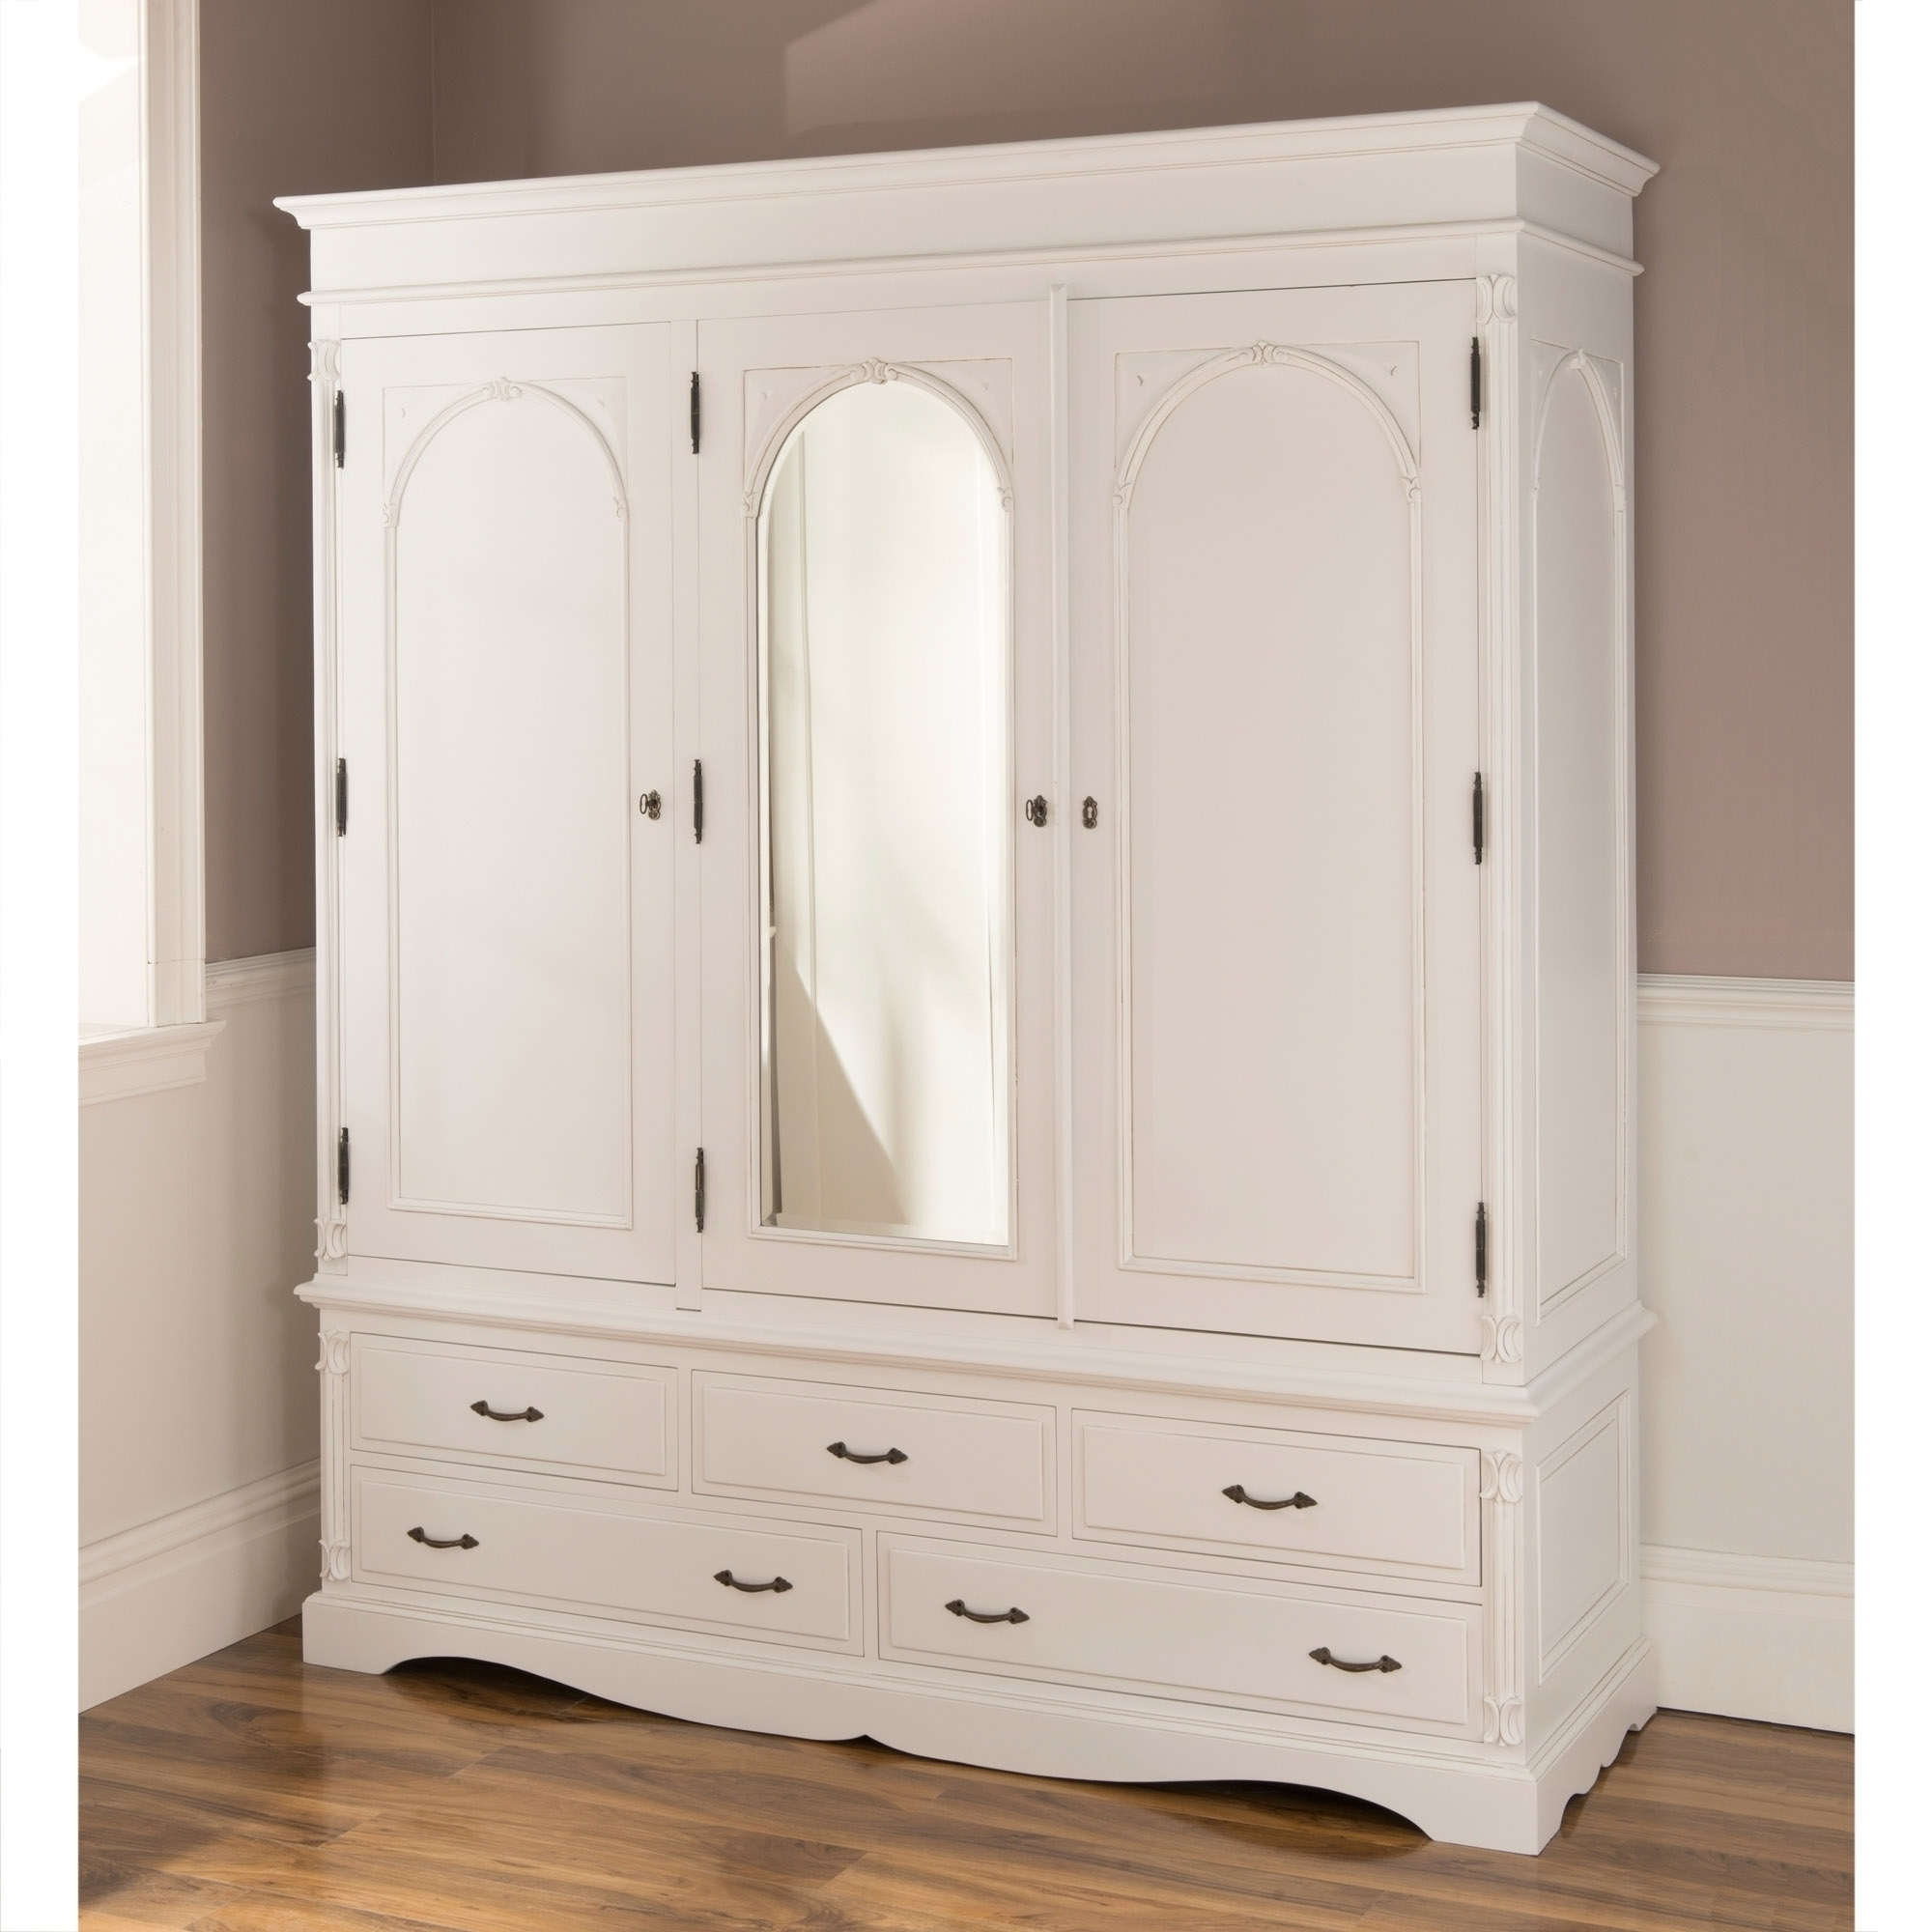 French White Wardrobes Regarding Well Liked Antique French Style Wardrobe (View 9 of 15)